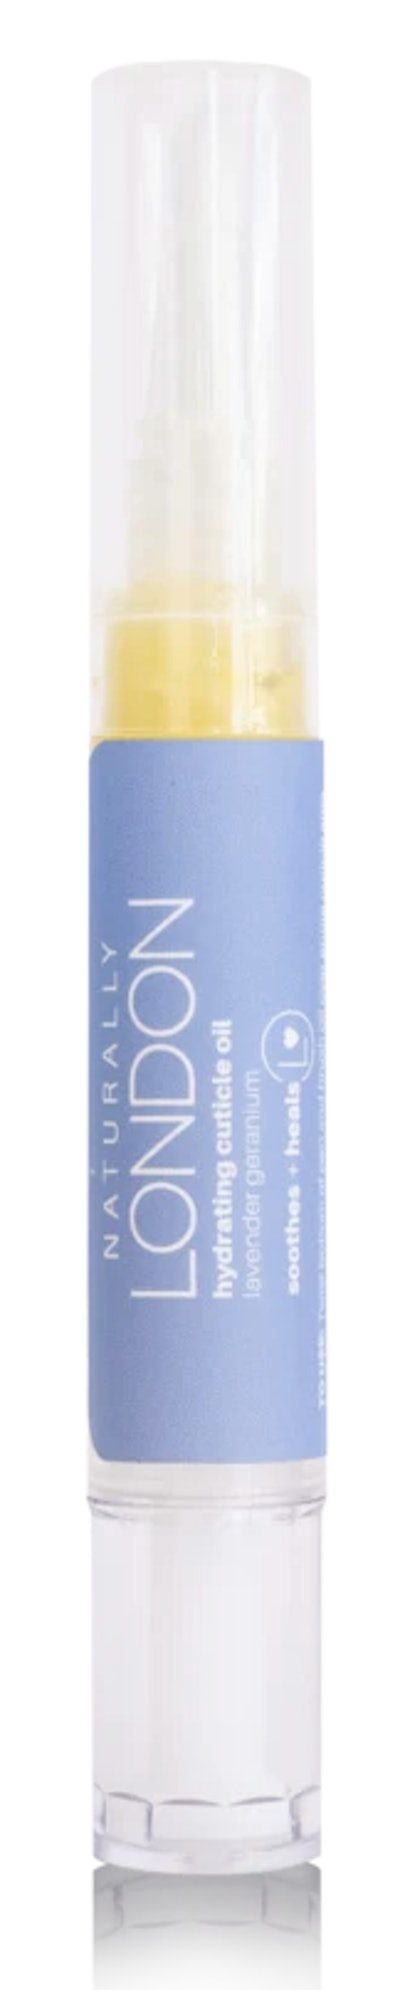 Naturally London Hydrating Cuticle Oil With Willow Bark Extract